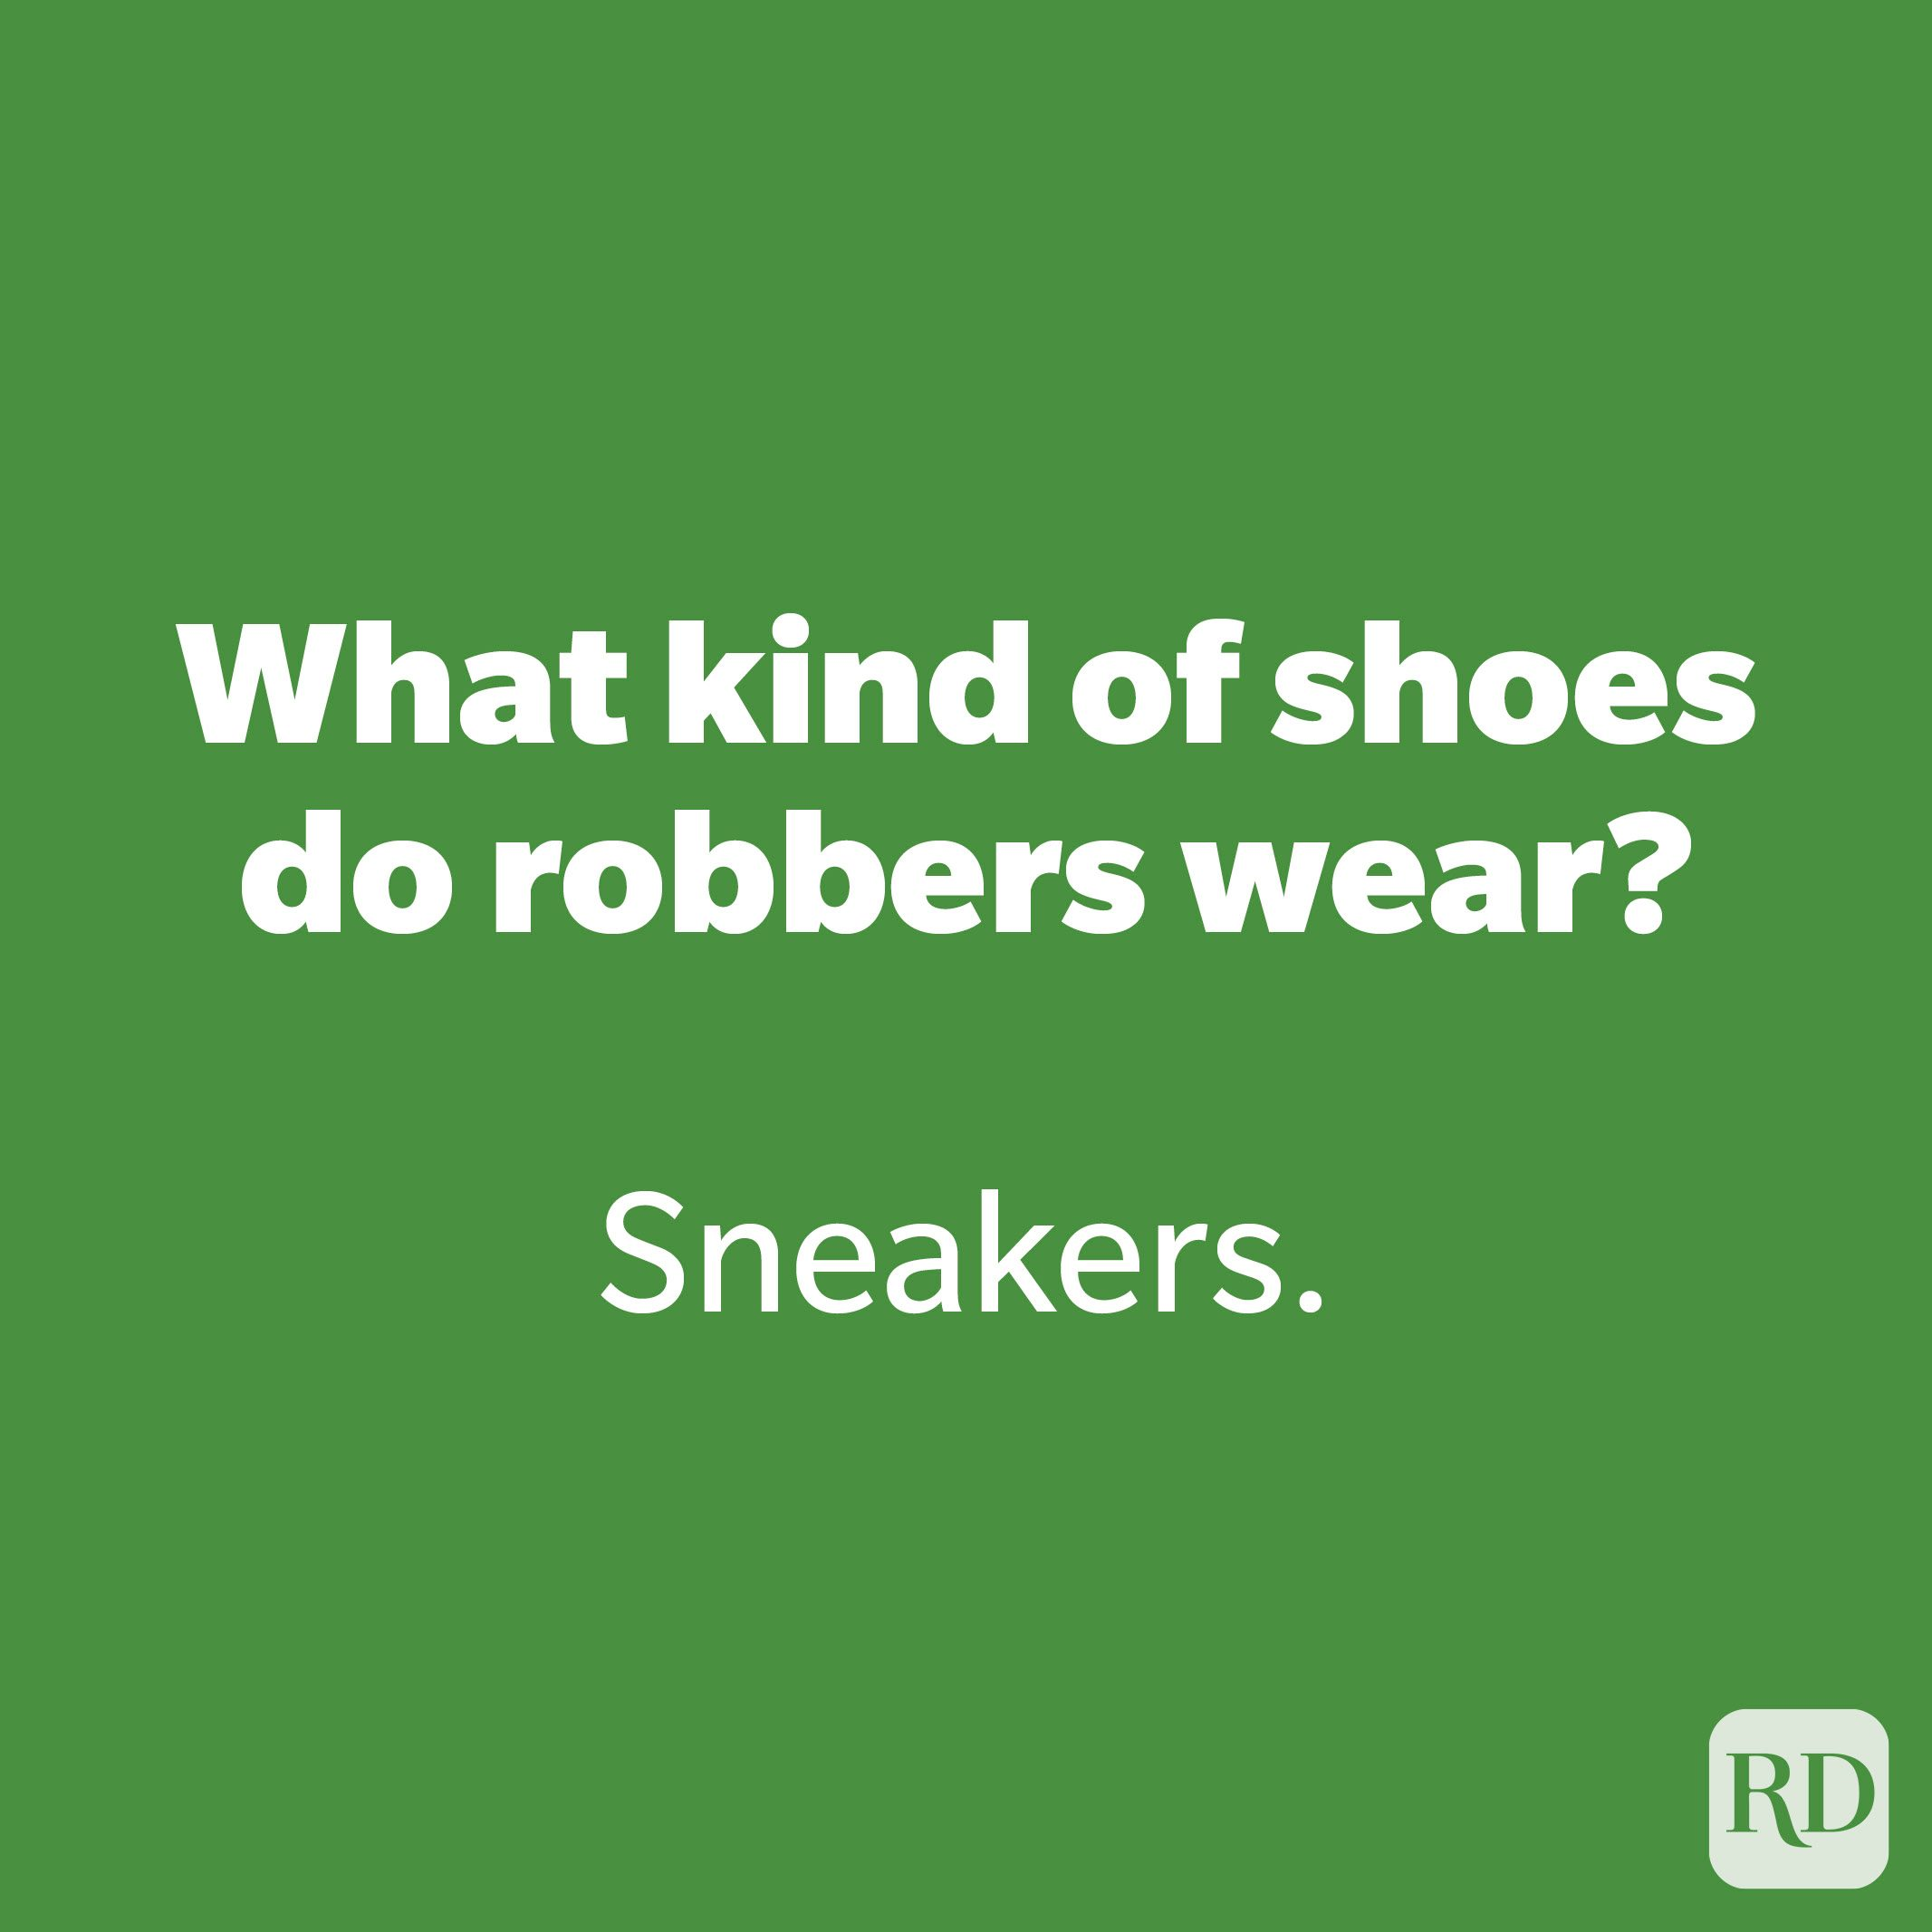 What kind of shoes do robbers wear?